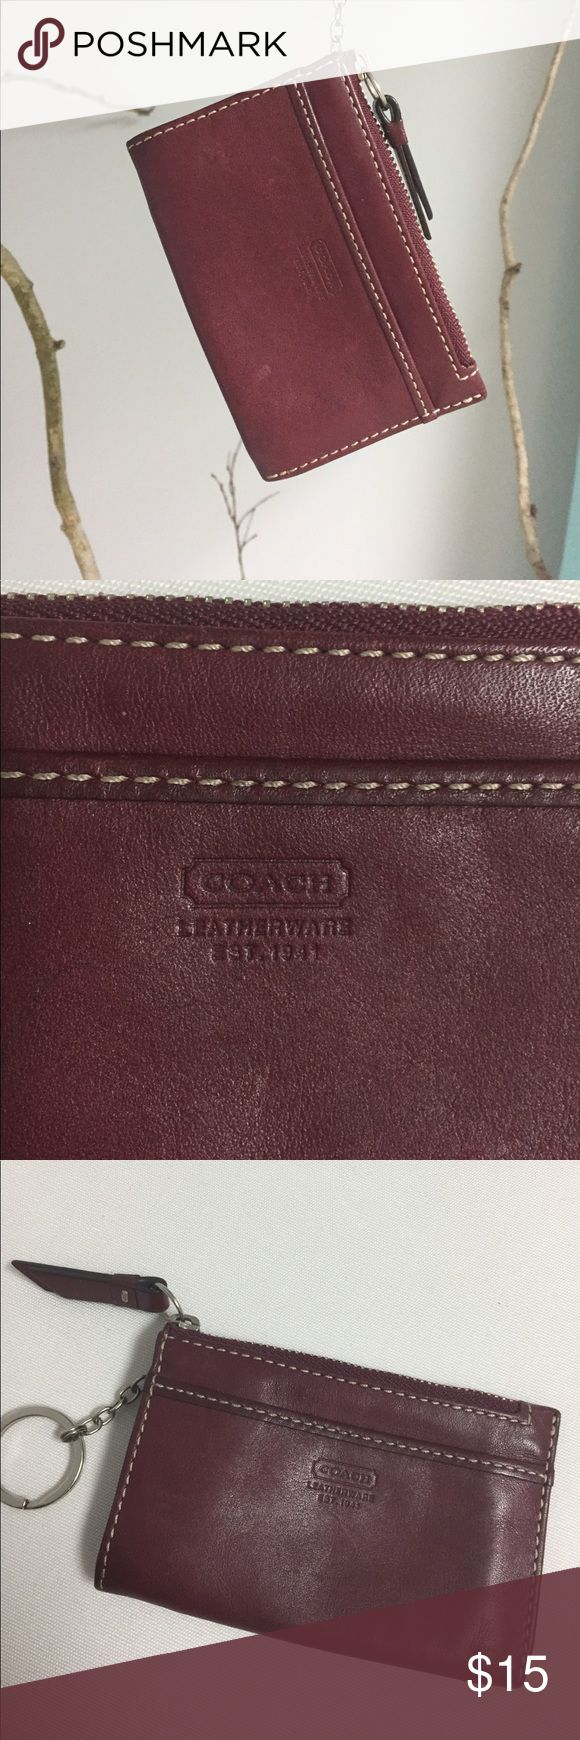 "Coach Leather change wallet Authentic Butter soft, cognac color leather Coach change wallet  has a center zip pouch and 2 side pockets perfect for cards. Key ring attachment means you can clip this to you keys and always have everything you need in one place. 4.5x3"" Coach Accessories Key & Card Holders"